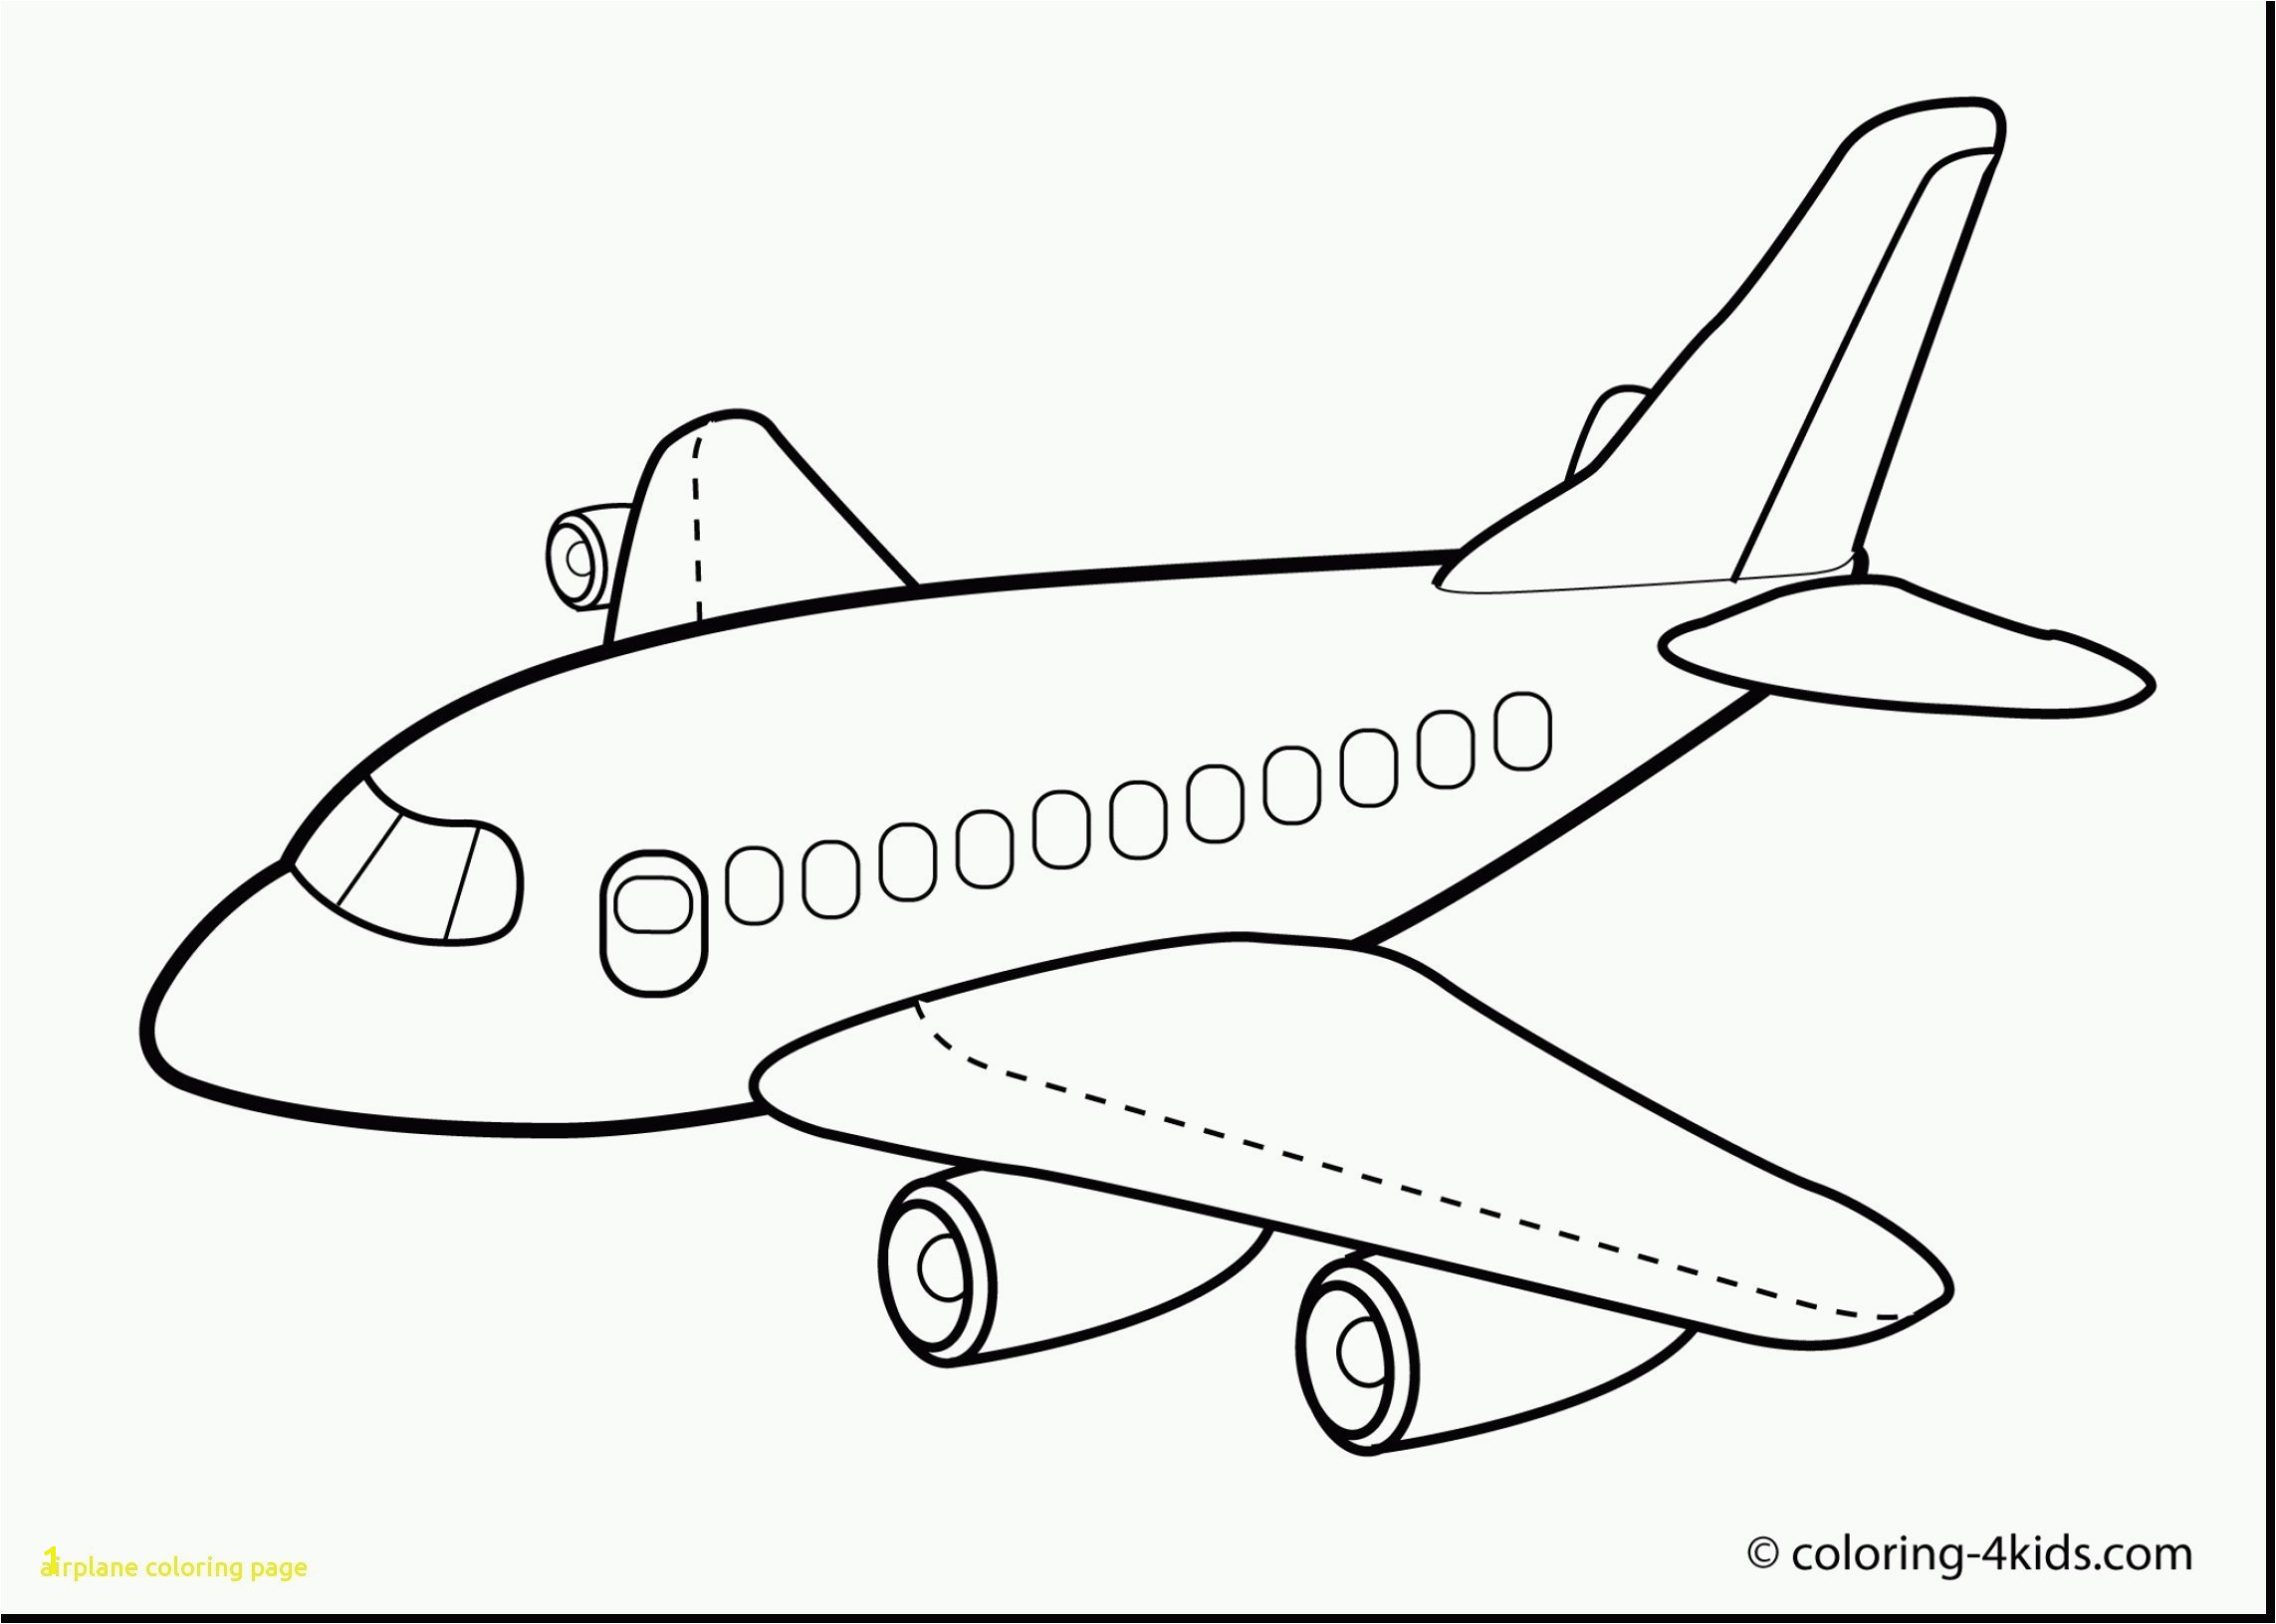 Airplane Coloring Pages Lovely Printable Airplane Coloring Pages Coloring Pages Coloring Pages Airplane Coloring Pages